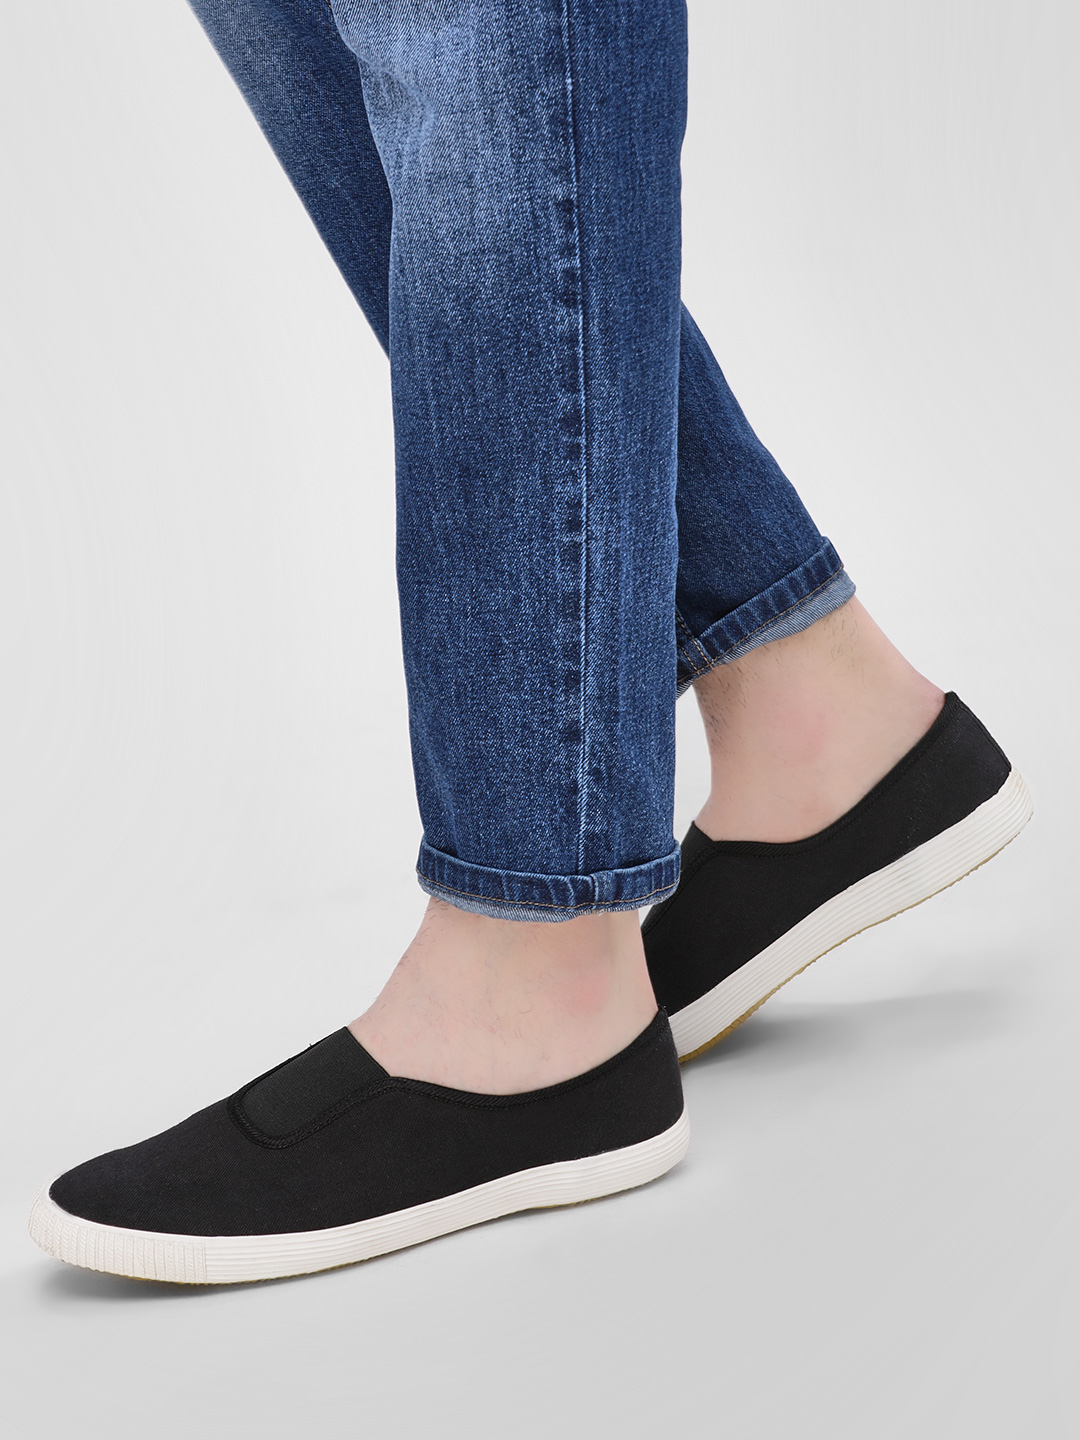 KOOVS Black Slip-On Gusset Plimsoll Shoes 1